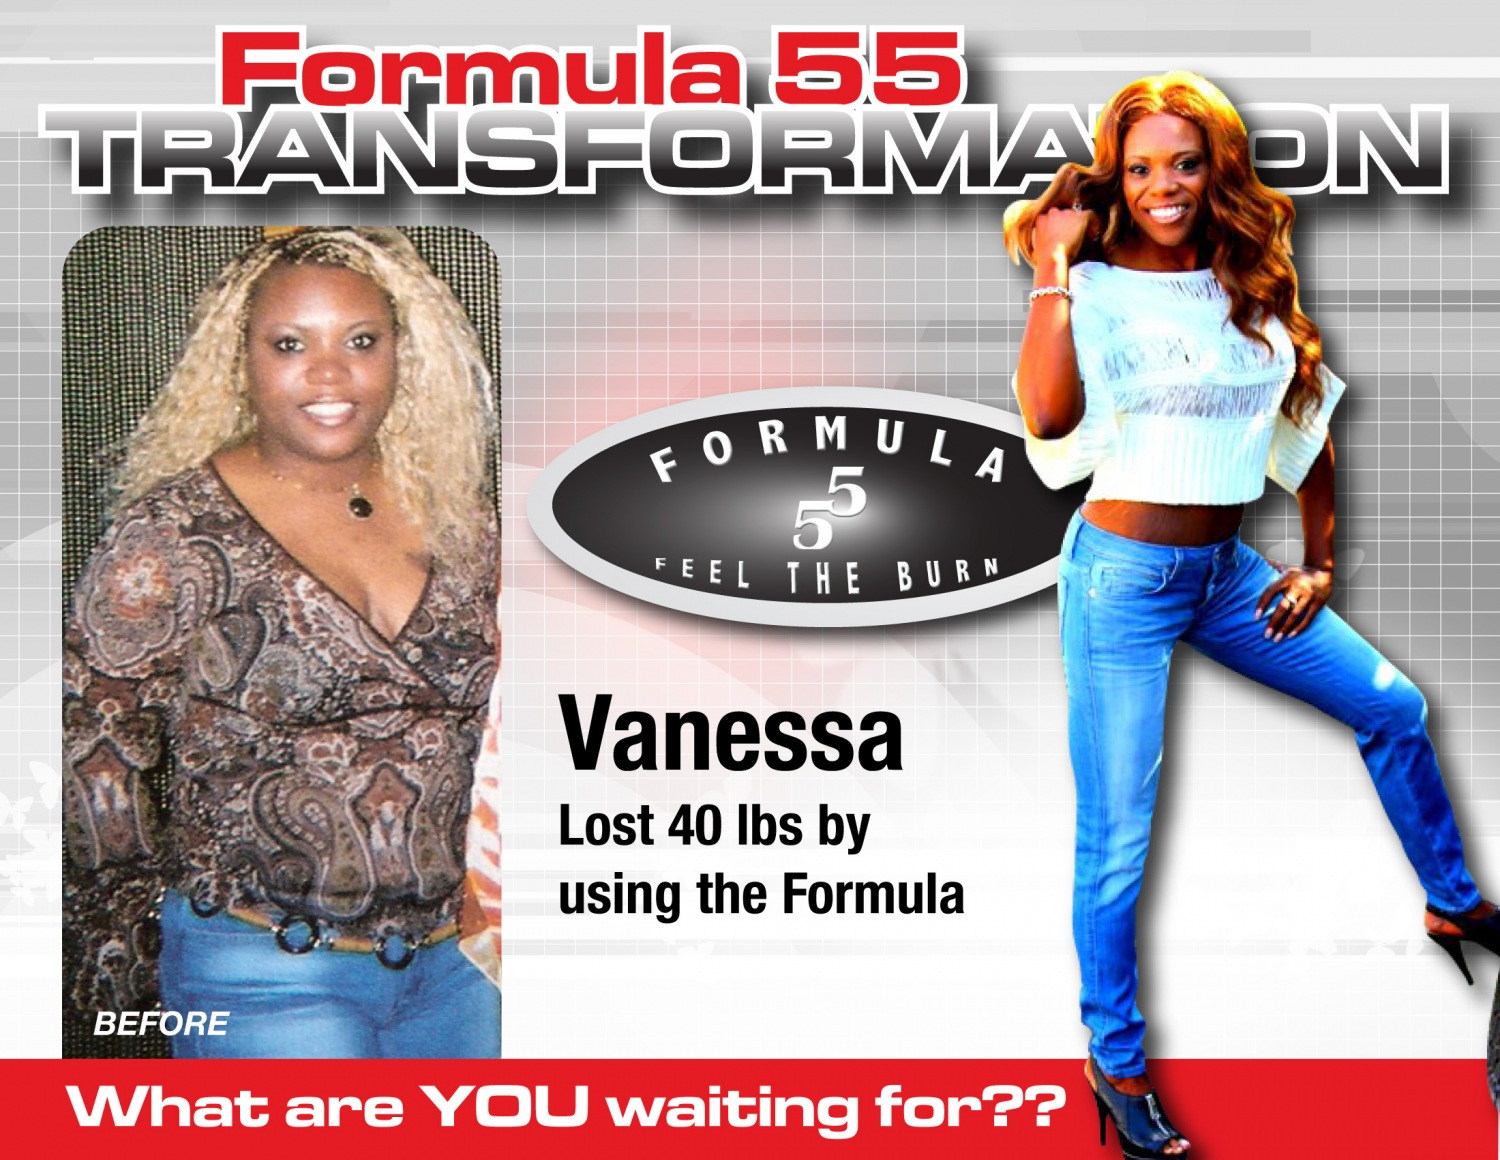 form-55-Transformation-vanessa.jpg